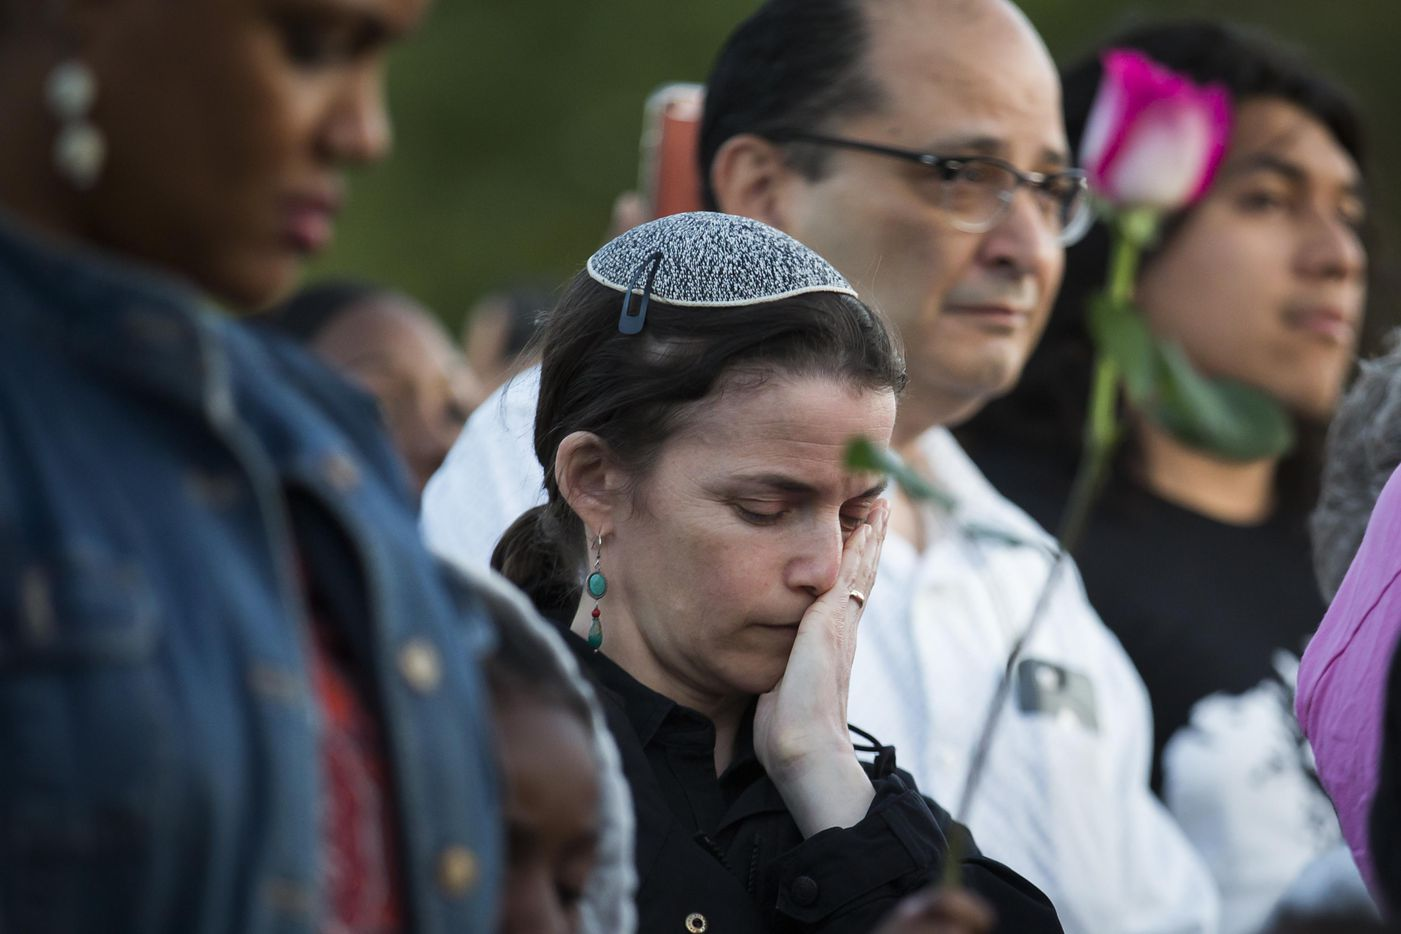 """Rabbi Elana Zelony bows her head during the """"Remember His Name: Vigil for Jordan Edwards"""" candlelight vigil at Virgil T. Irwin Park on Thursday, May 4, 2017, in Balch Springs, Texas."""